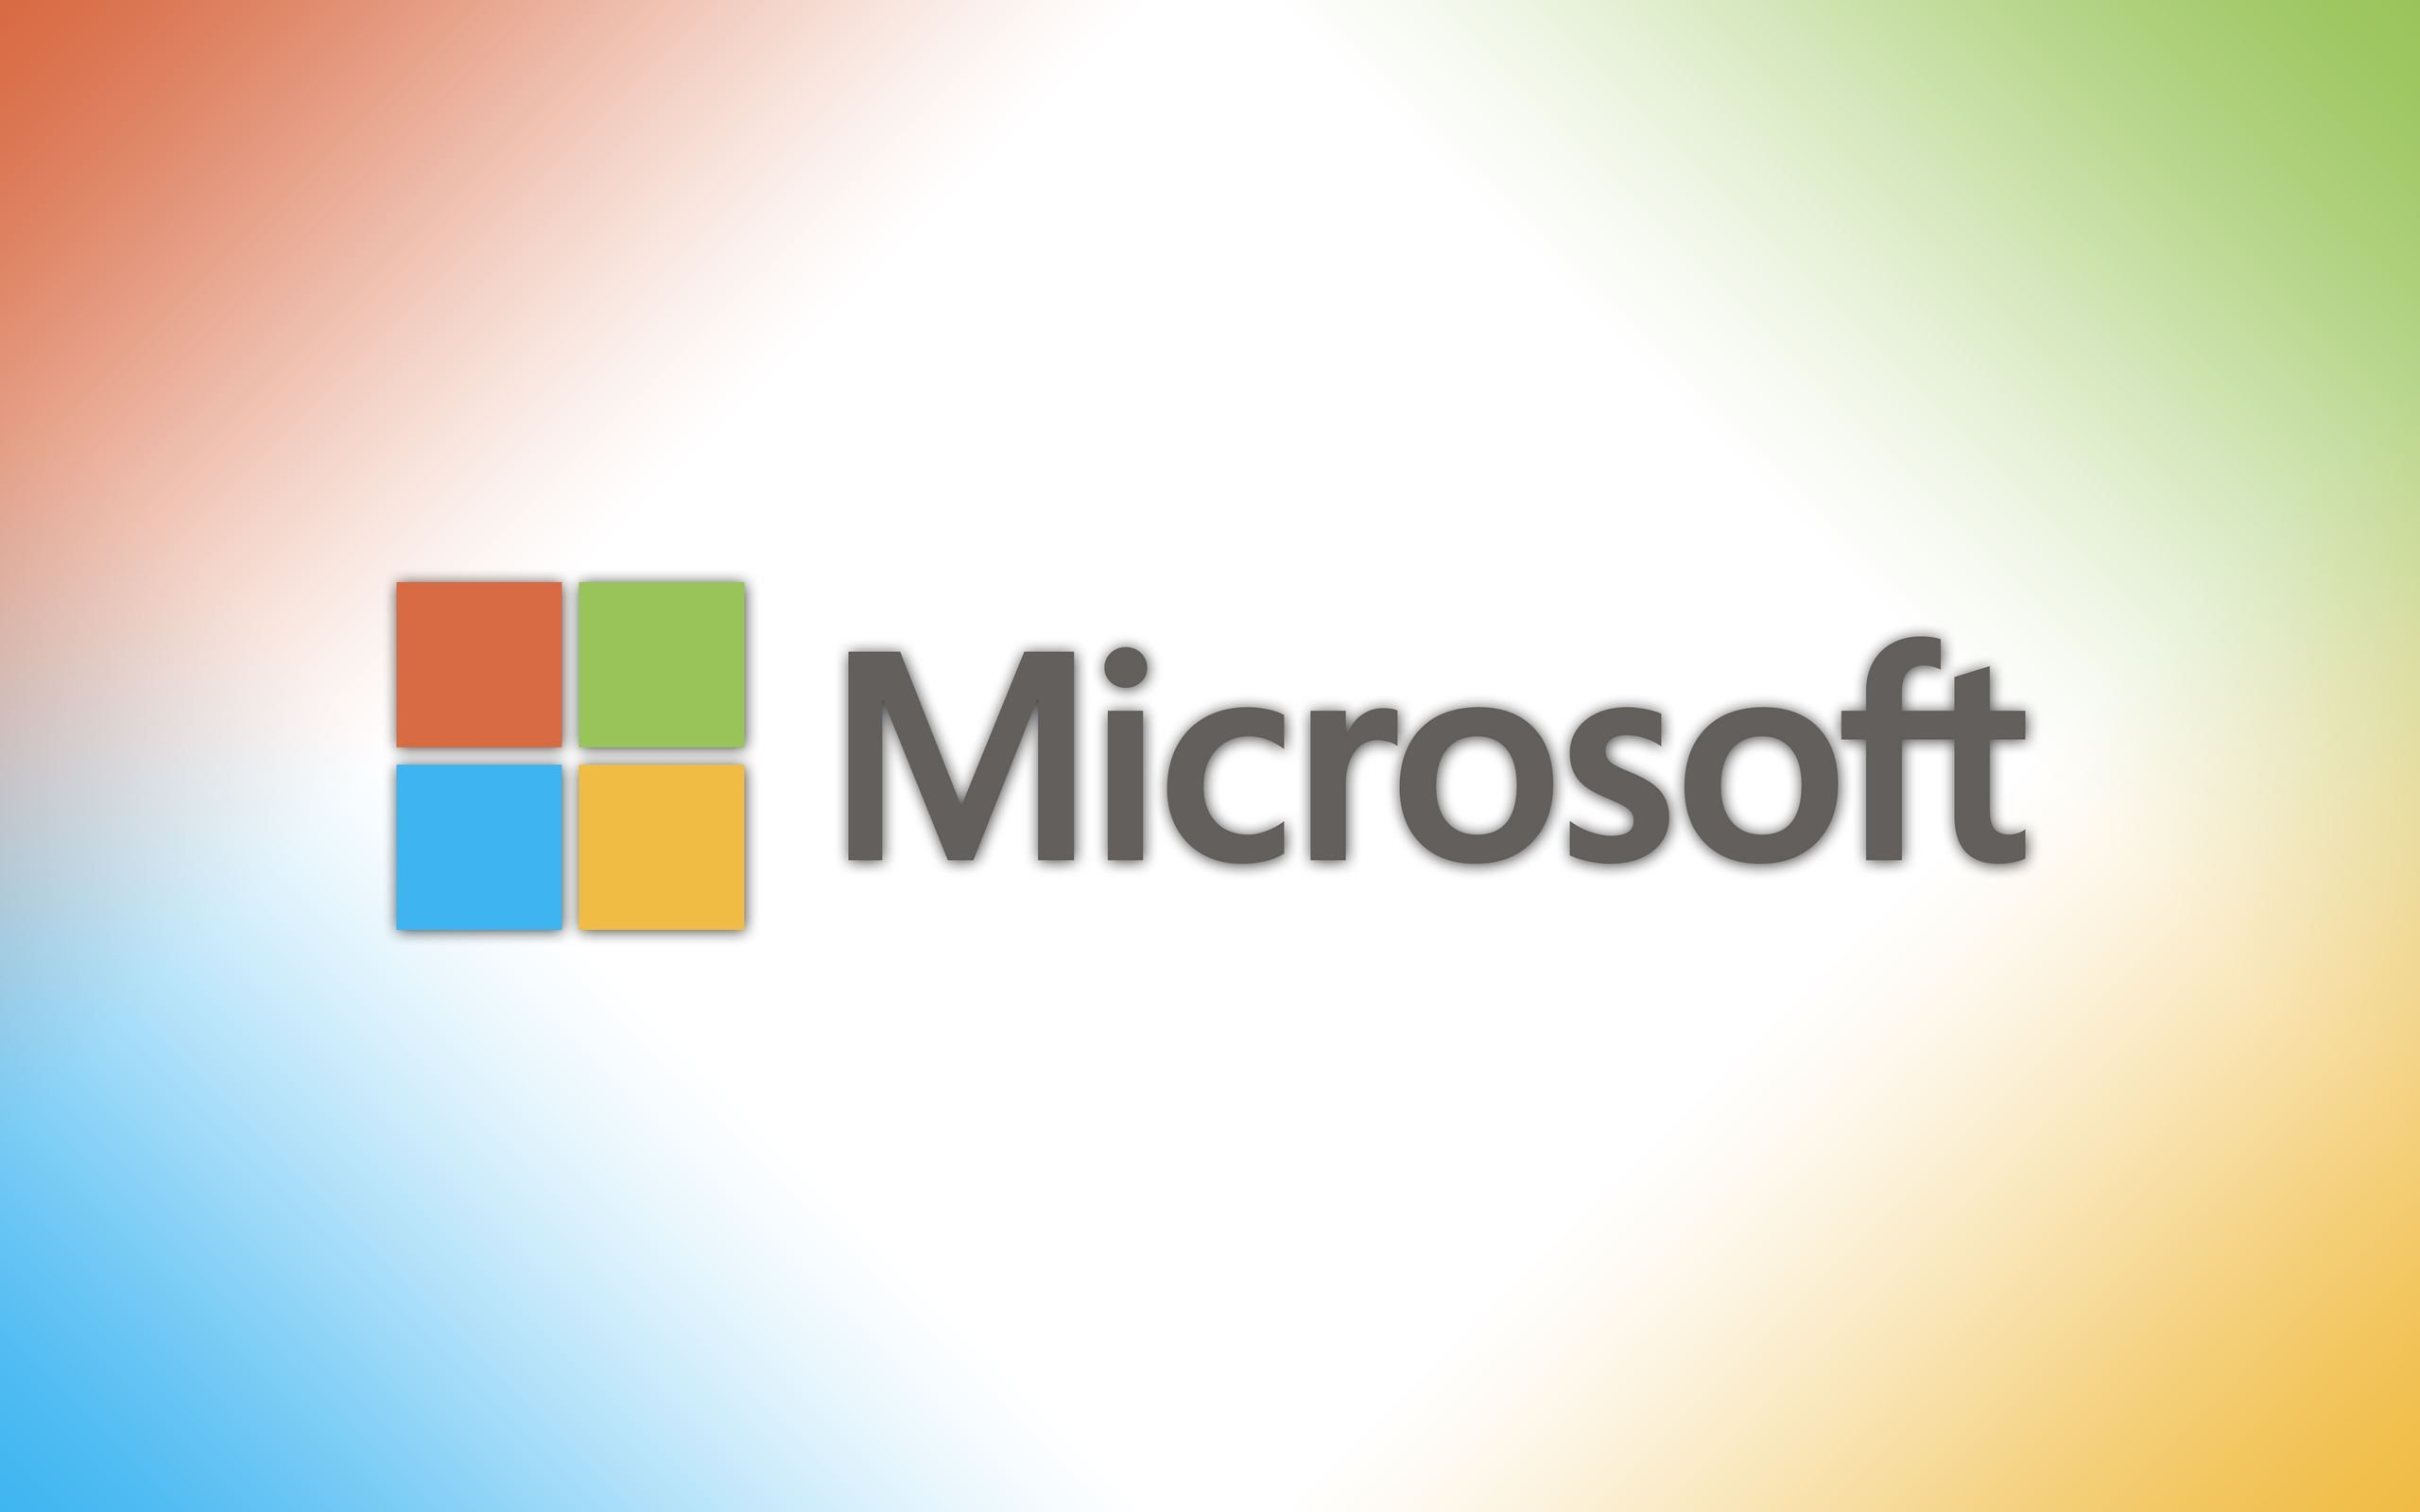 Microsoft Logo HD Wallpapers 2560x1600